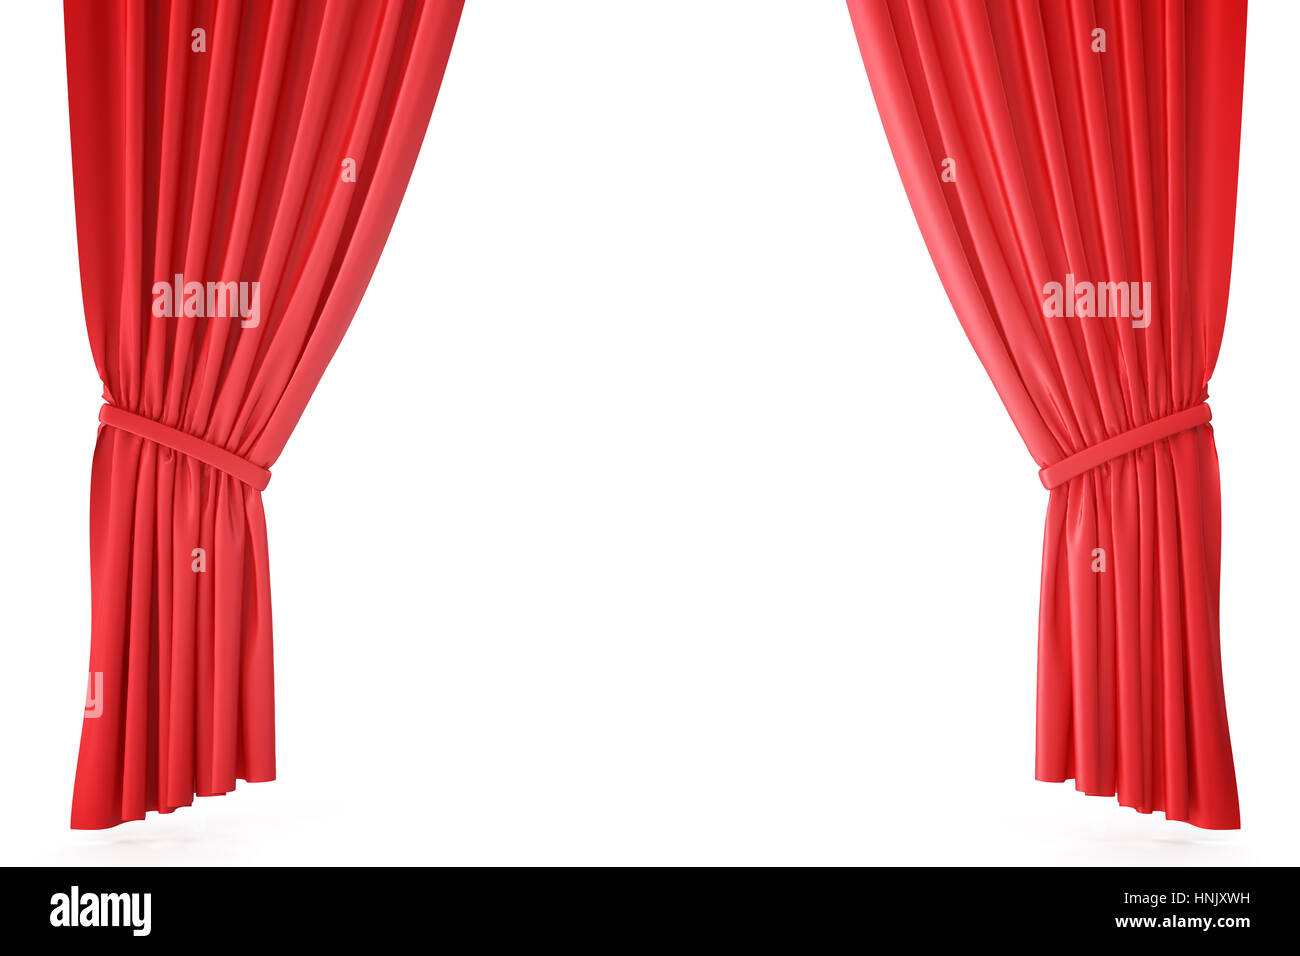 red velvet stage curtains scarlet theatre drapery silk classical